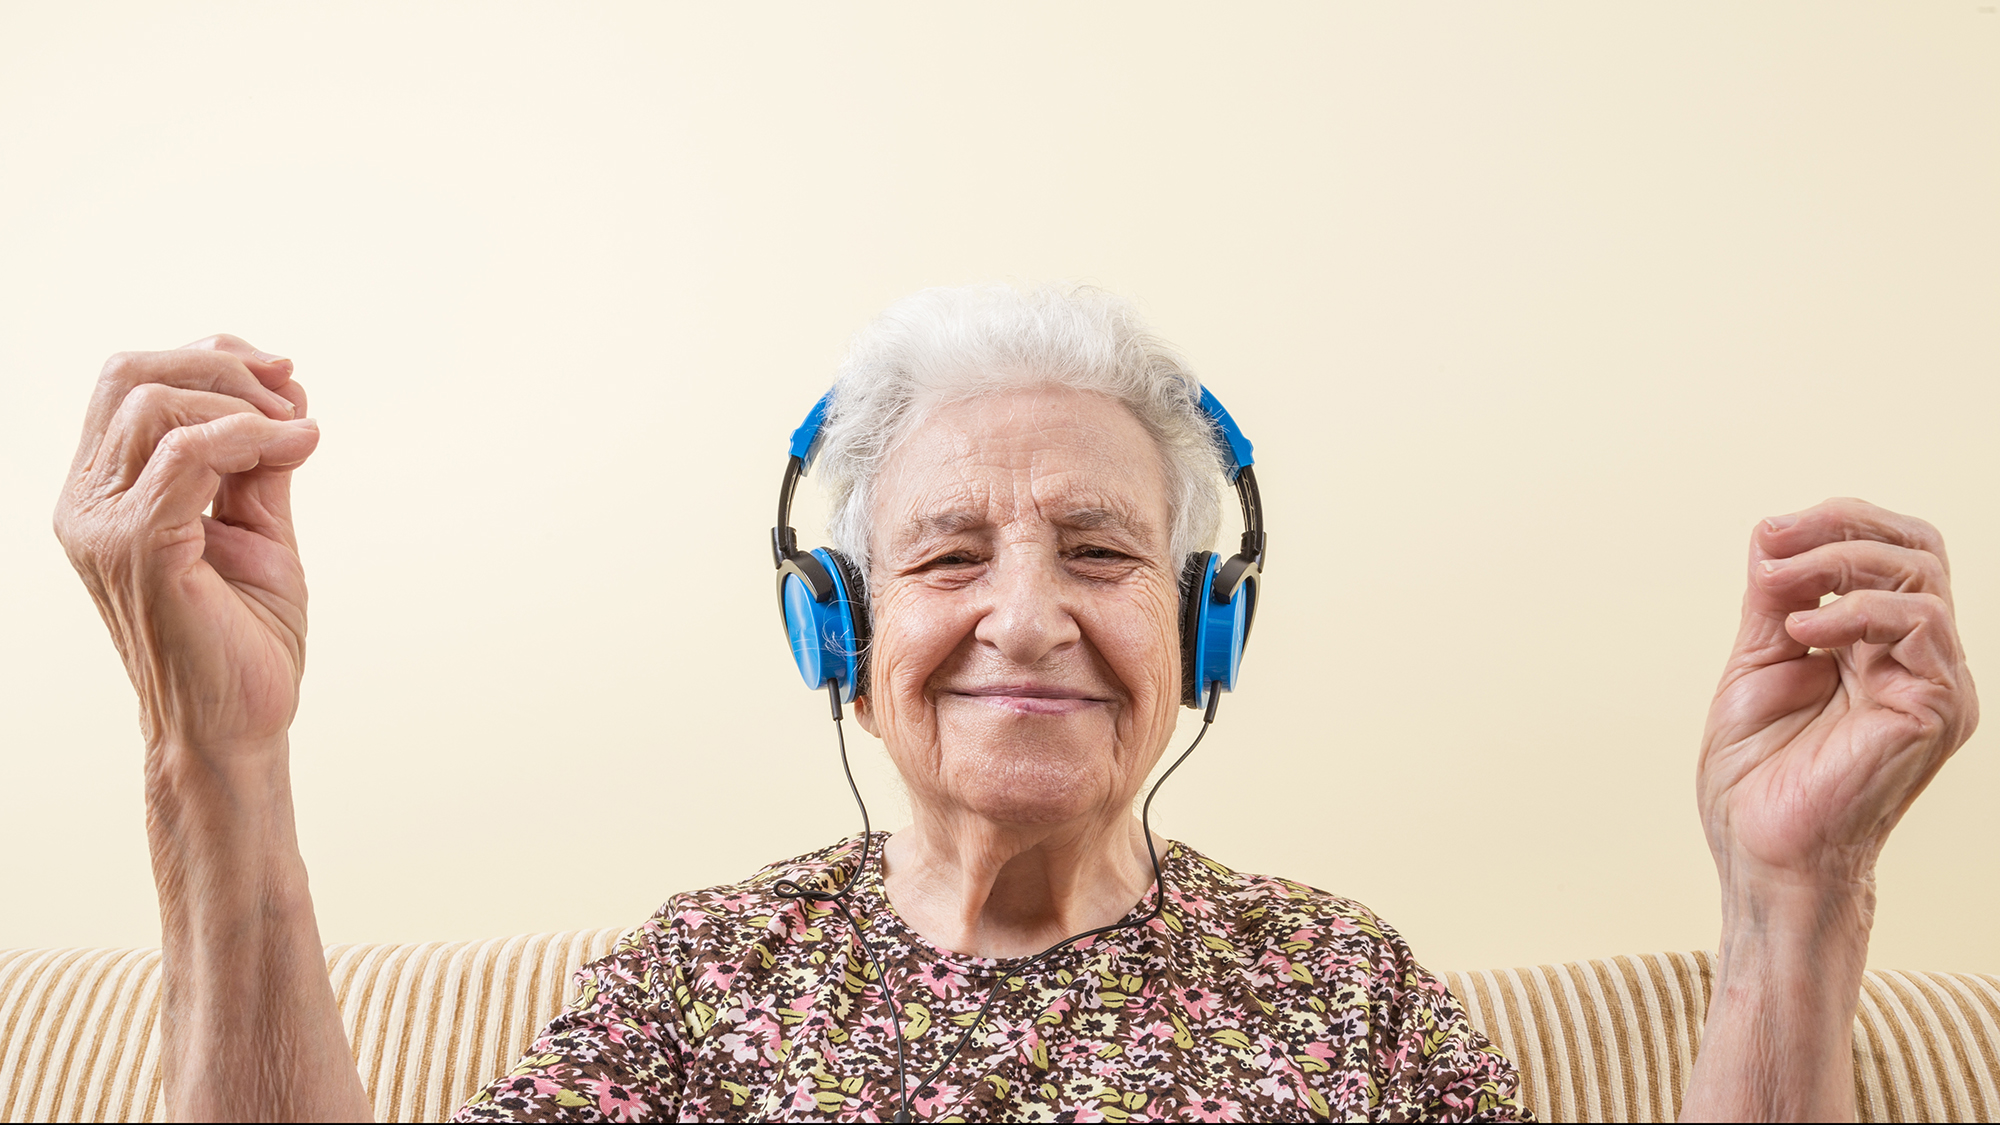 Listening to music can help your body fight infection